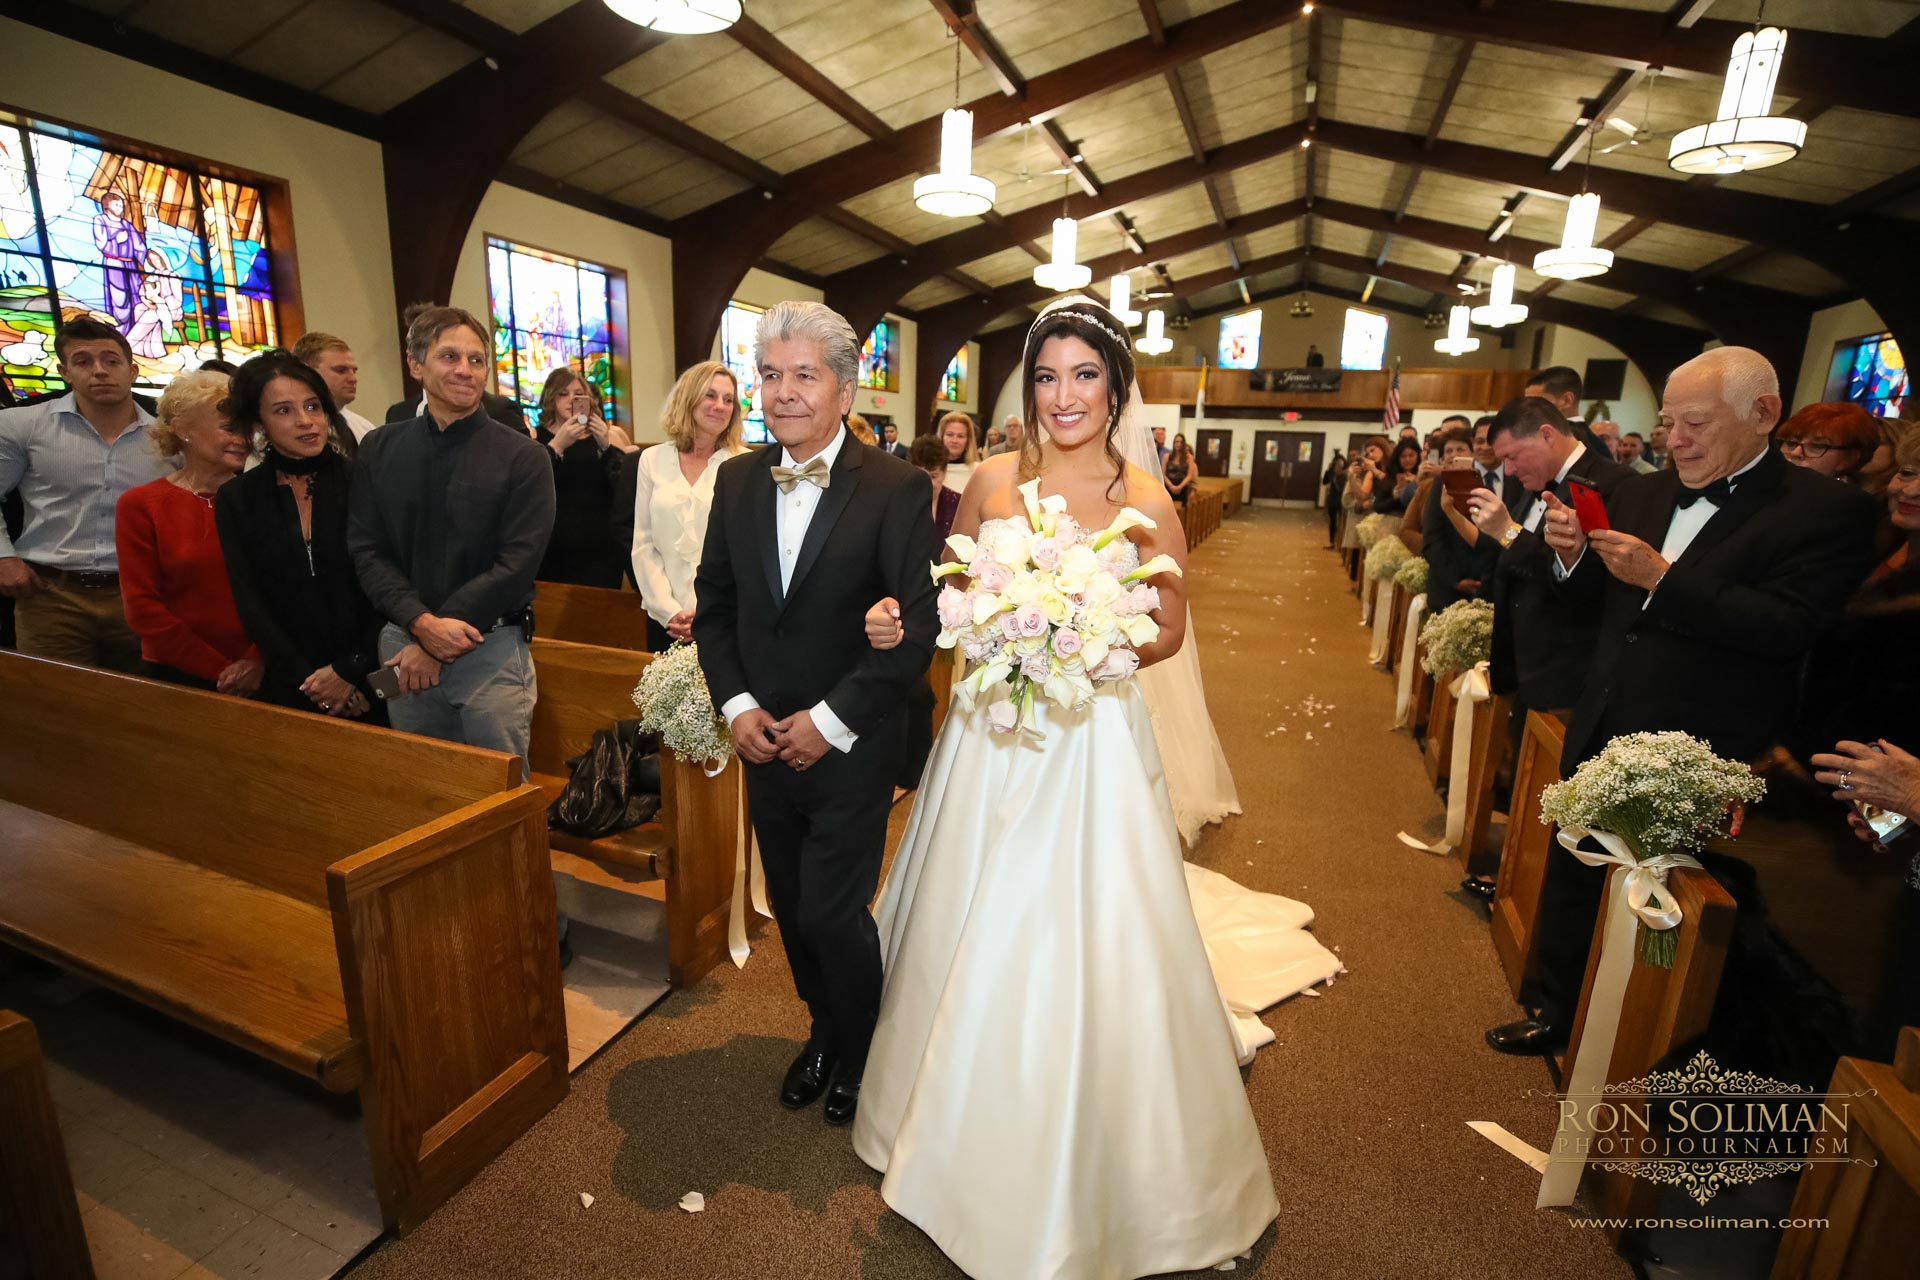 THE MERION WEDDING 14